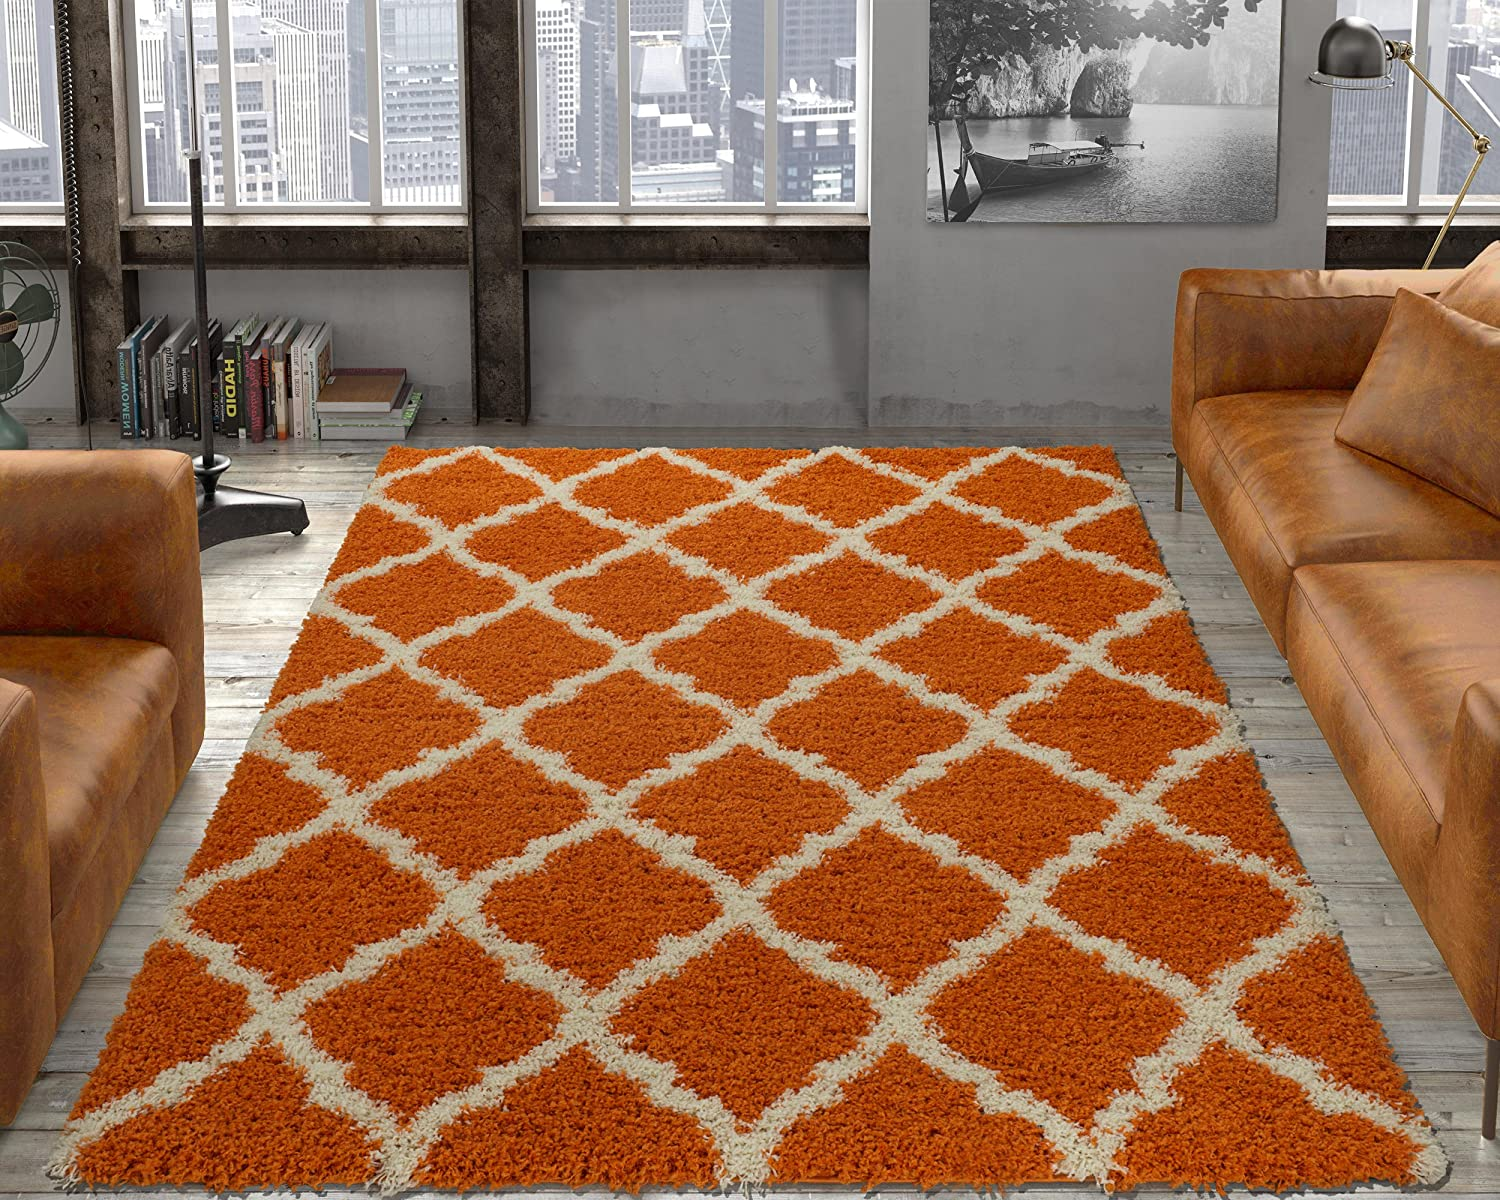 Ottomanson Ultimate Shaggy Collection Moroccan Trellis Design Shag Rug Contemporary Bedroom and Living room Soft Shag Rugs, Orange